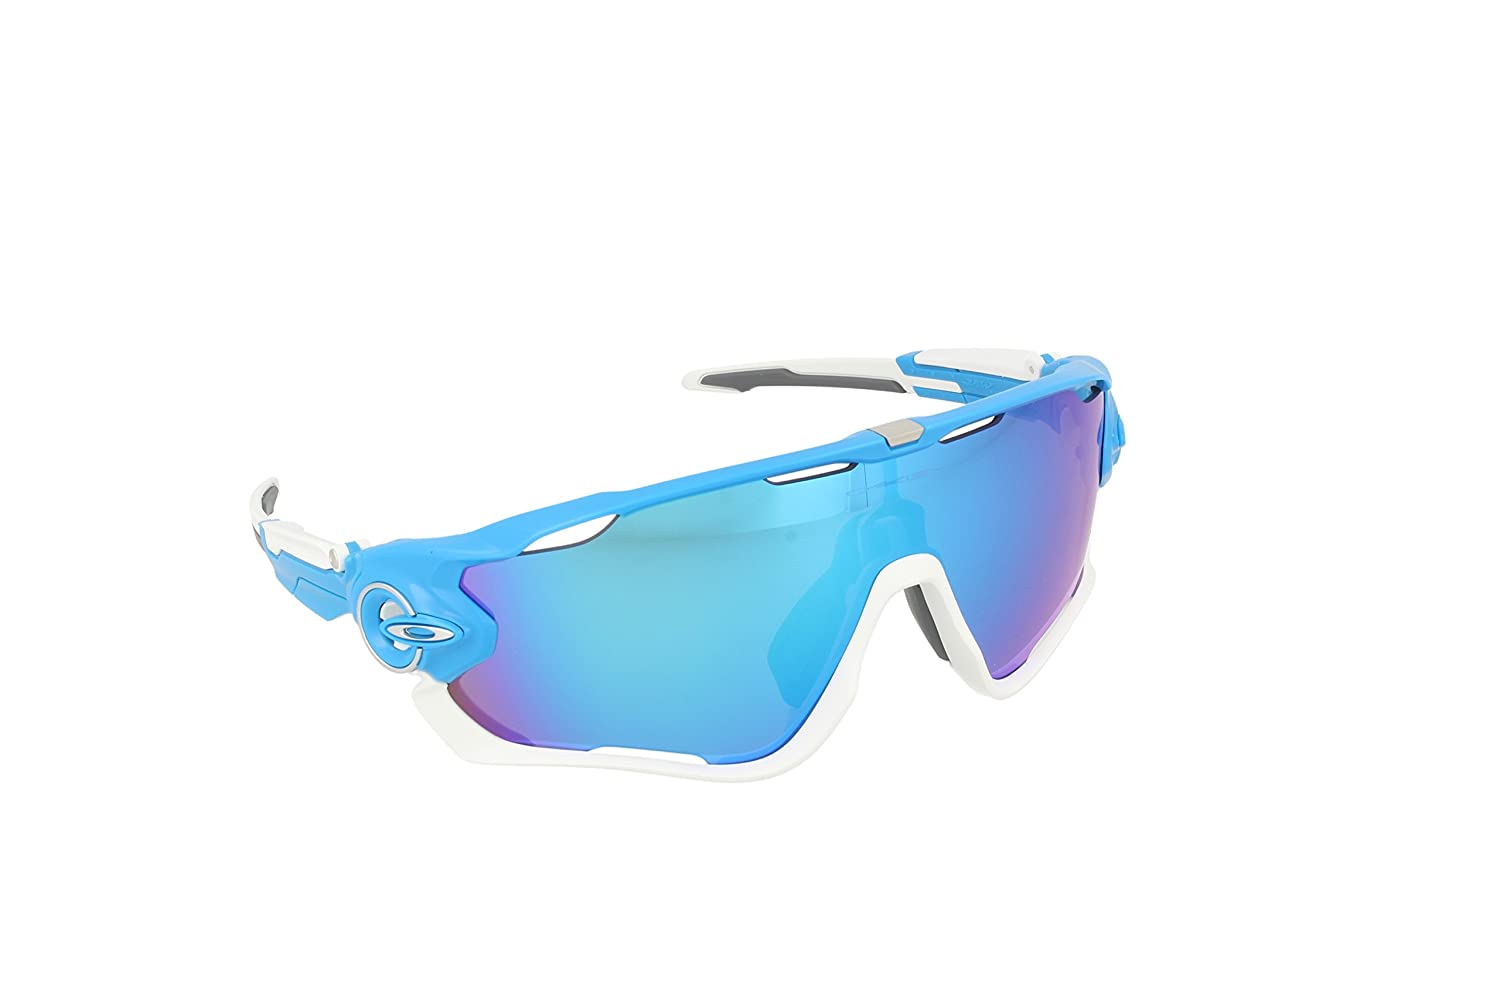 f0c90aeed8a Amazon.com  Oakley Men s Jawbreaker Splatterfade Sunglasses